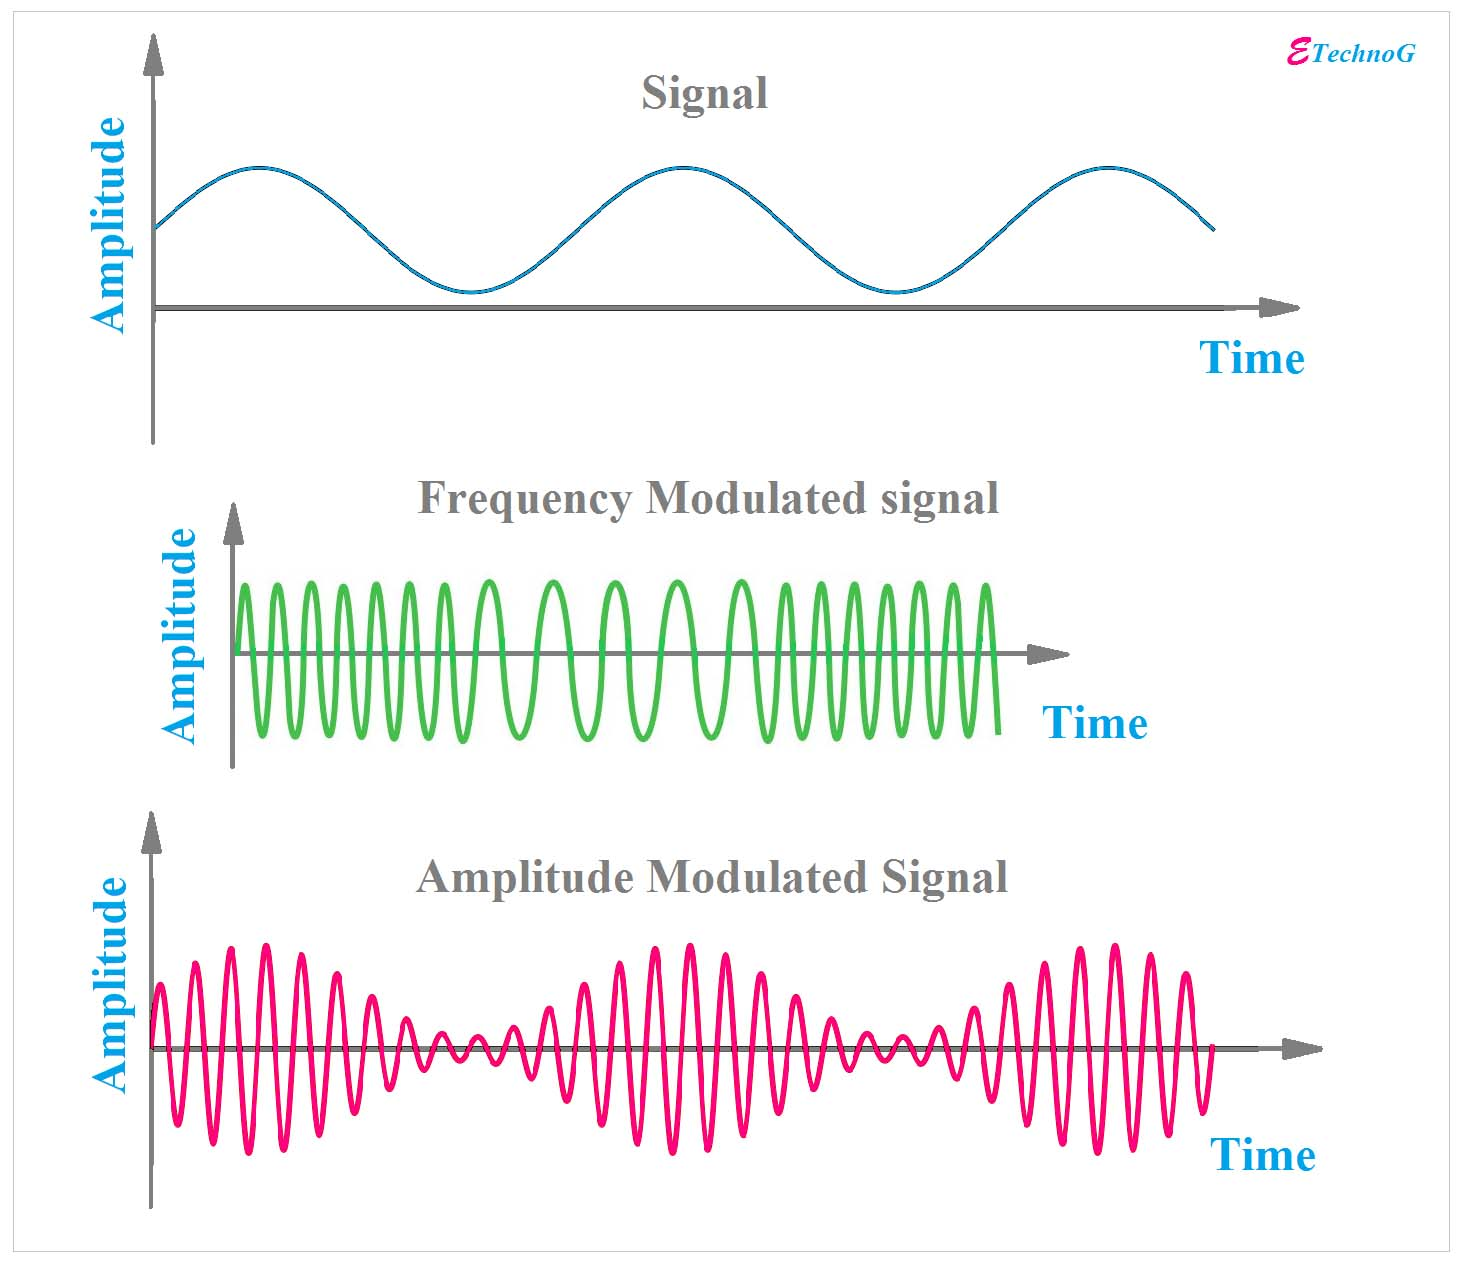 Main] Differences Between AM and FM in Communication - ETechnoG